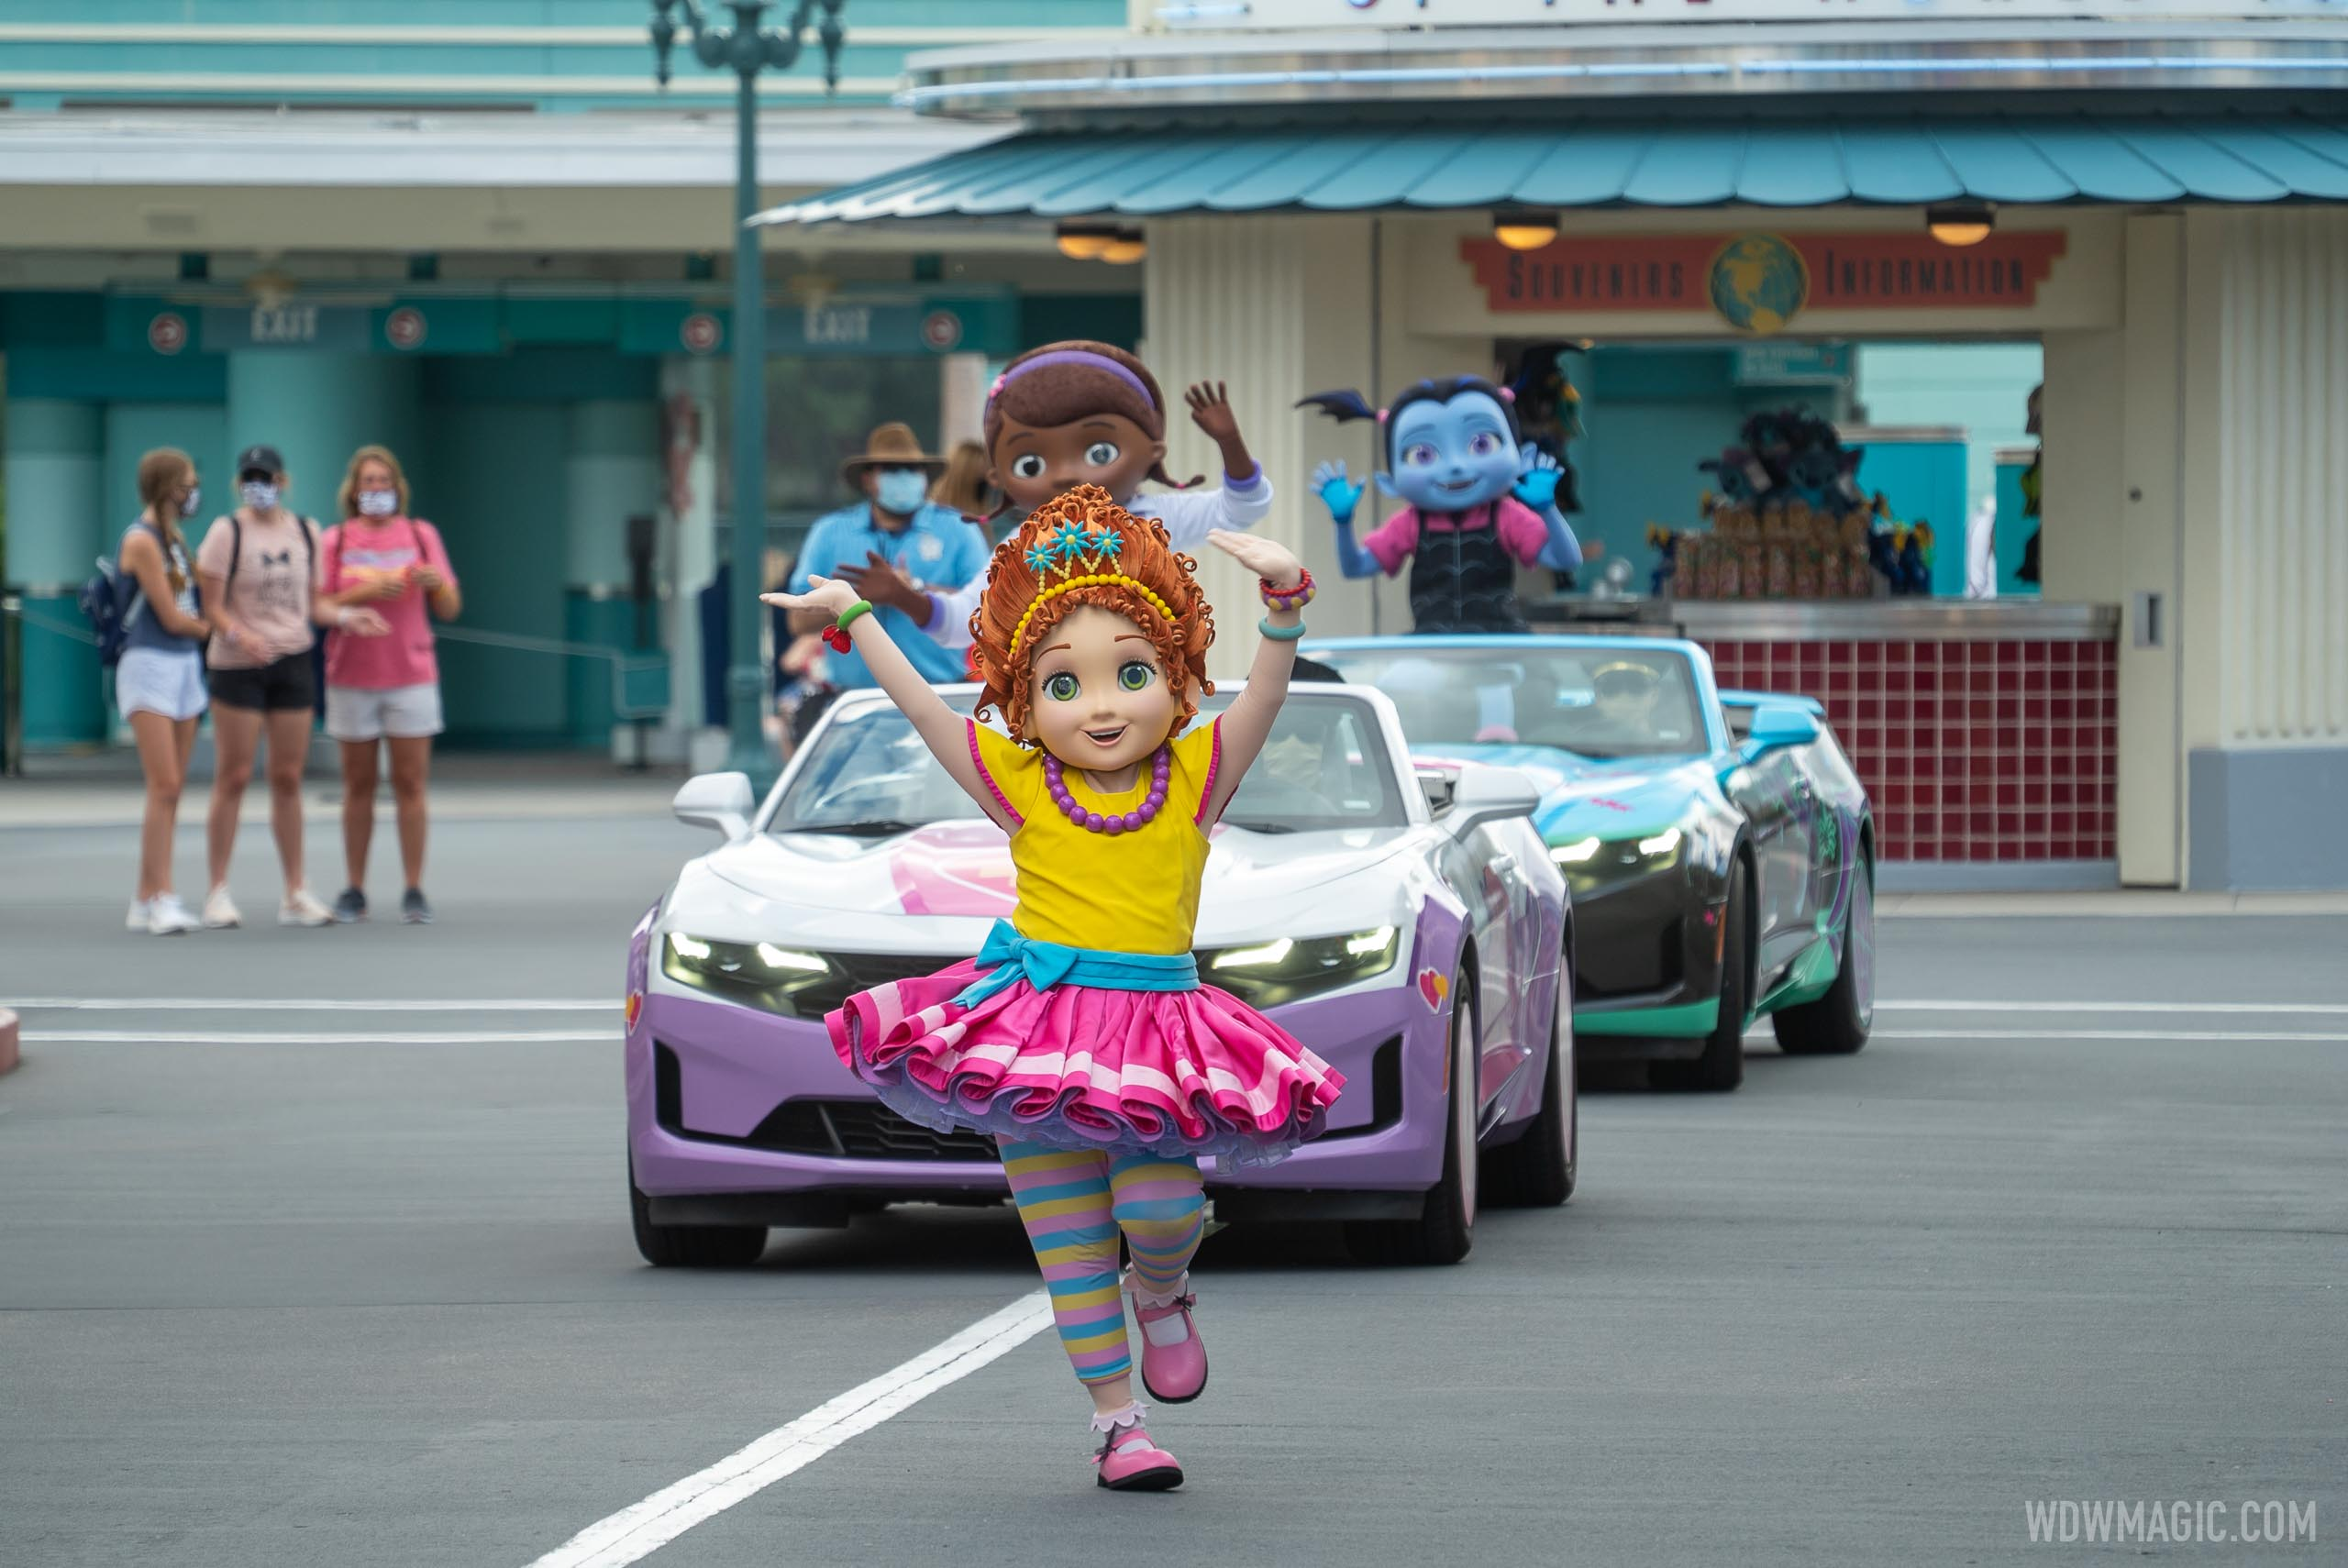 Fancy Nancy leads the Disney Junior cavalcade along Hollywood Blvd.